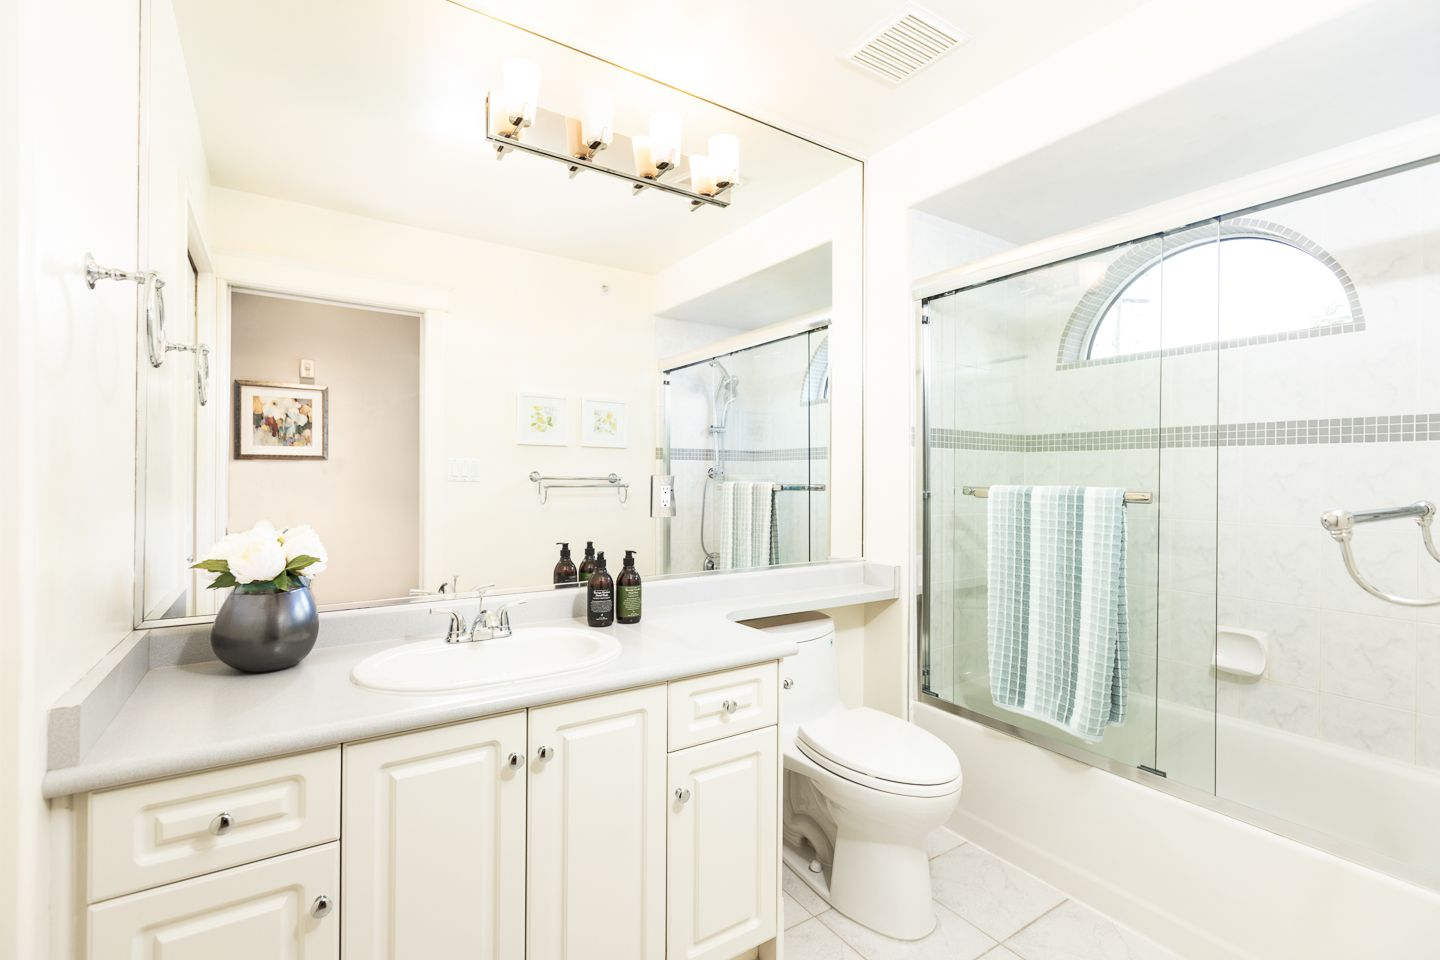 Photo 17: Photos: 2267 WEST 13TH AV in VANCOUVER: Kitsilano 1/2 Duplex for sale (Vancouver West)  : MLS®# R2407976